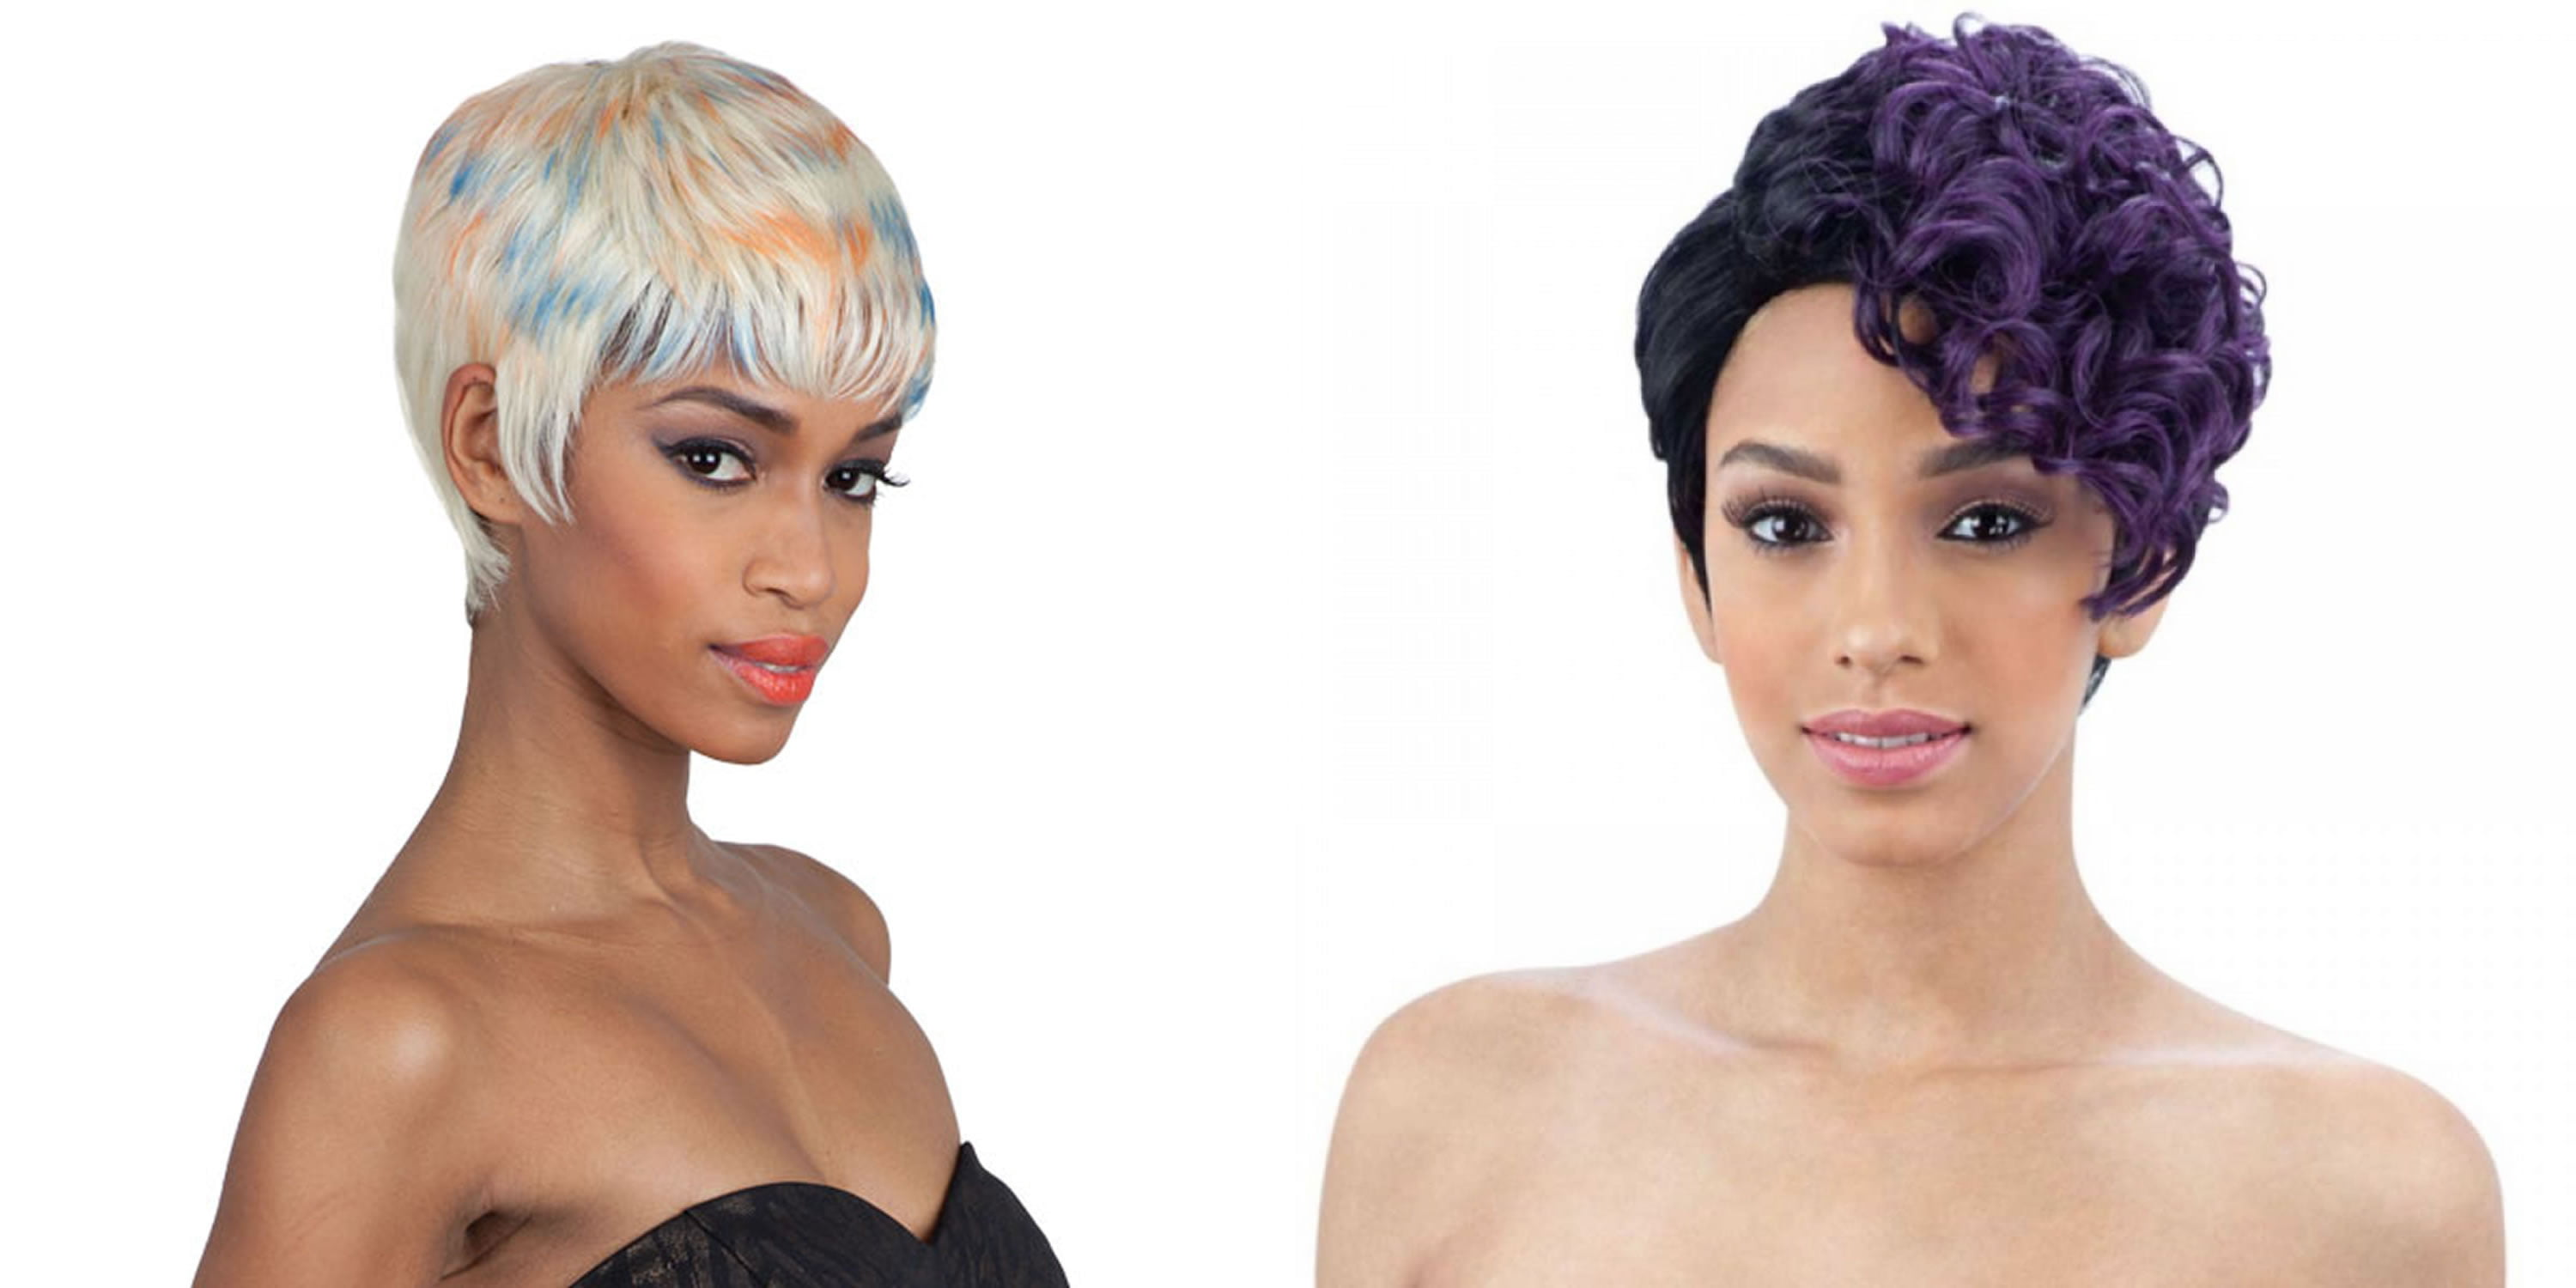 56 Cool Pixie Short Haircuts And Hairstyles For Black Hair Page 8 Of 10